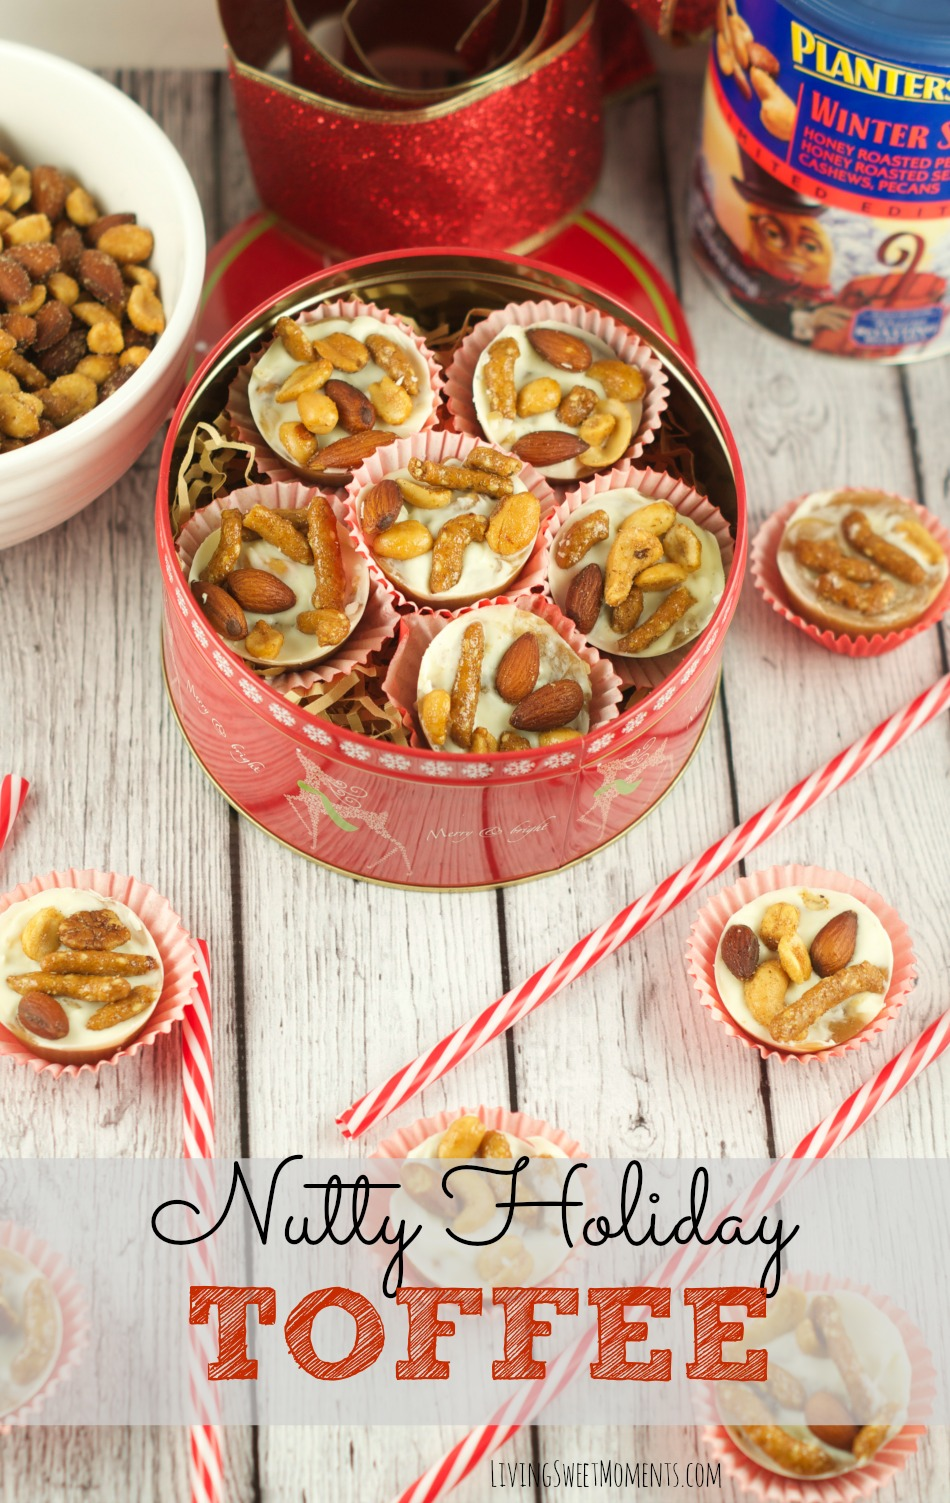 This delicious Holiday Spiced Toffee Recipe has nuts and white chocolate to kick the flavor up a notch. I love to make it in little muffin tins to give out.